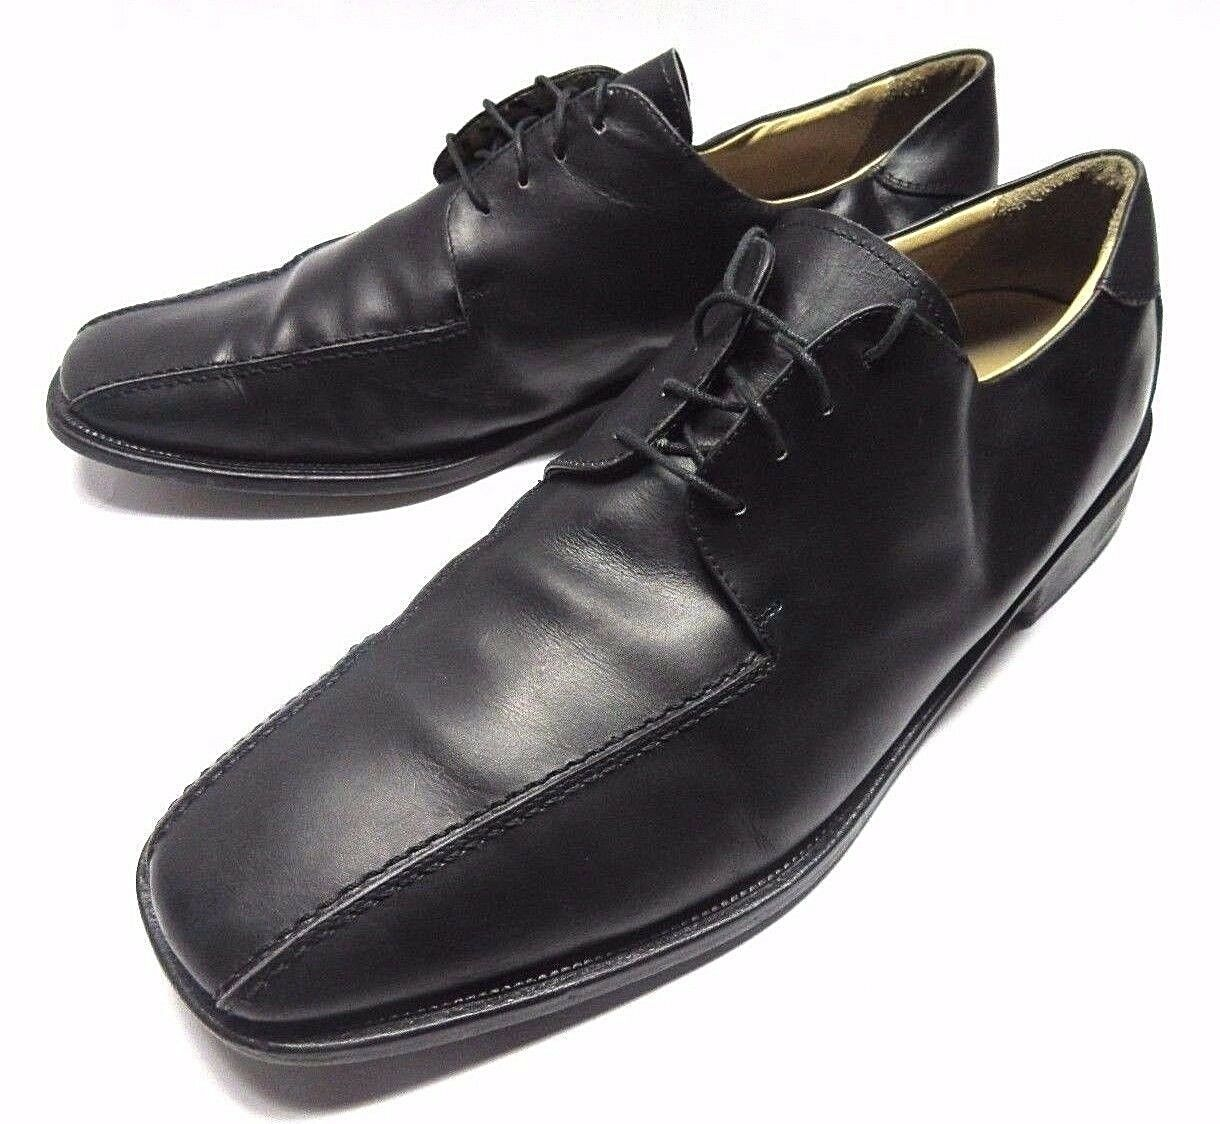 PRONTO men FIRENZE MADE IN ITALY OXFORDS SHOES SIZE 13 M BLACK LEATHER LACE UP